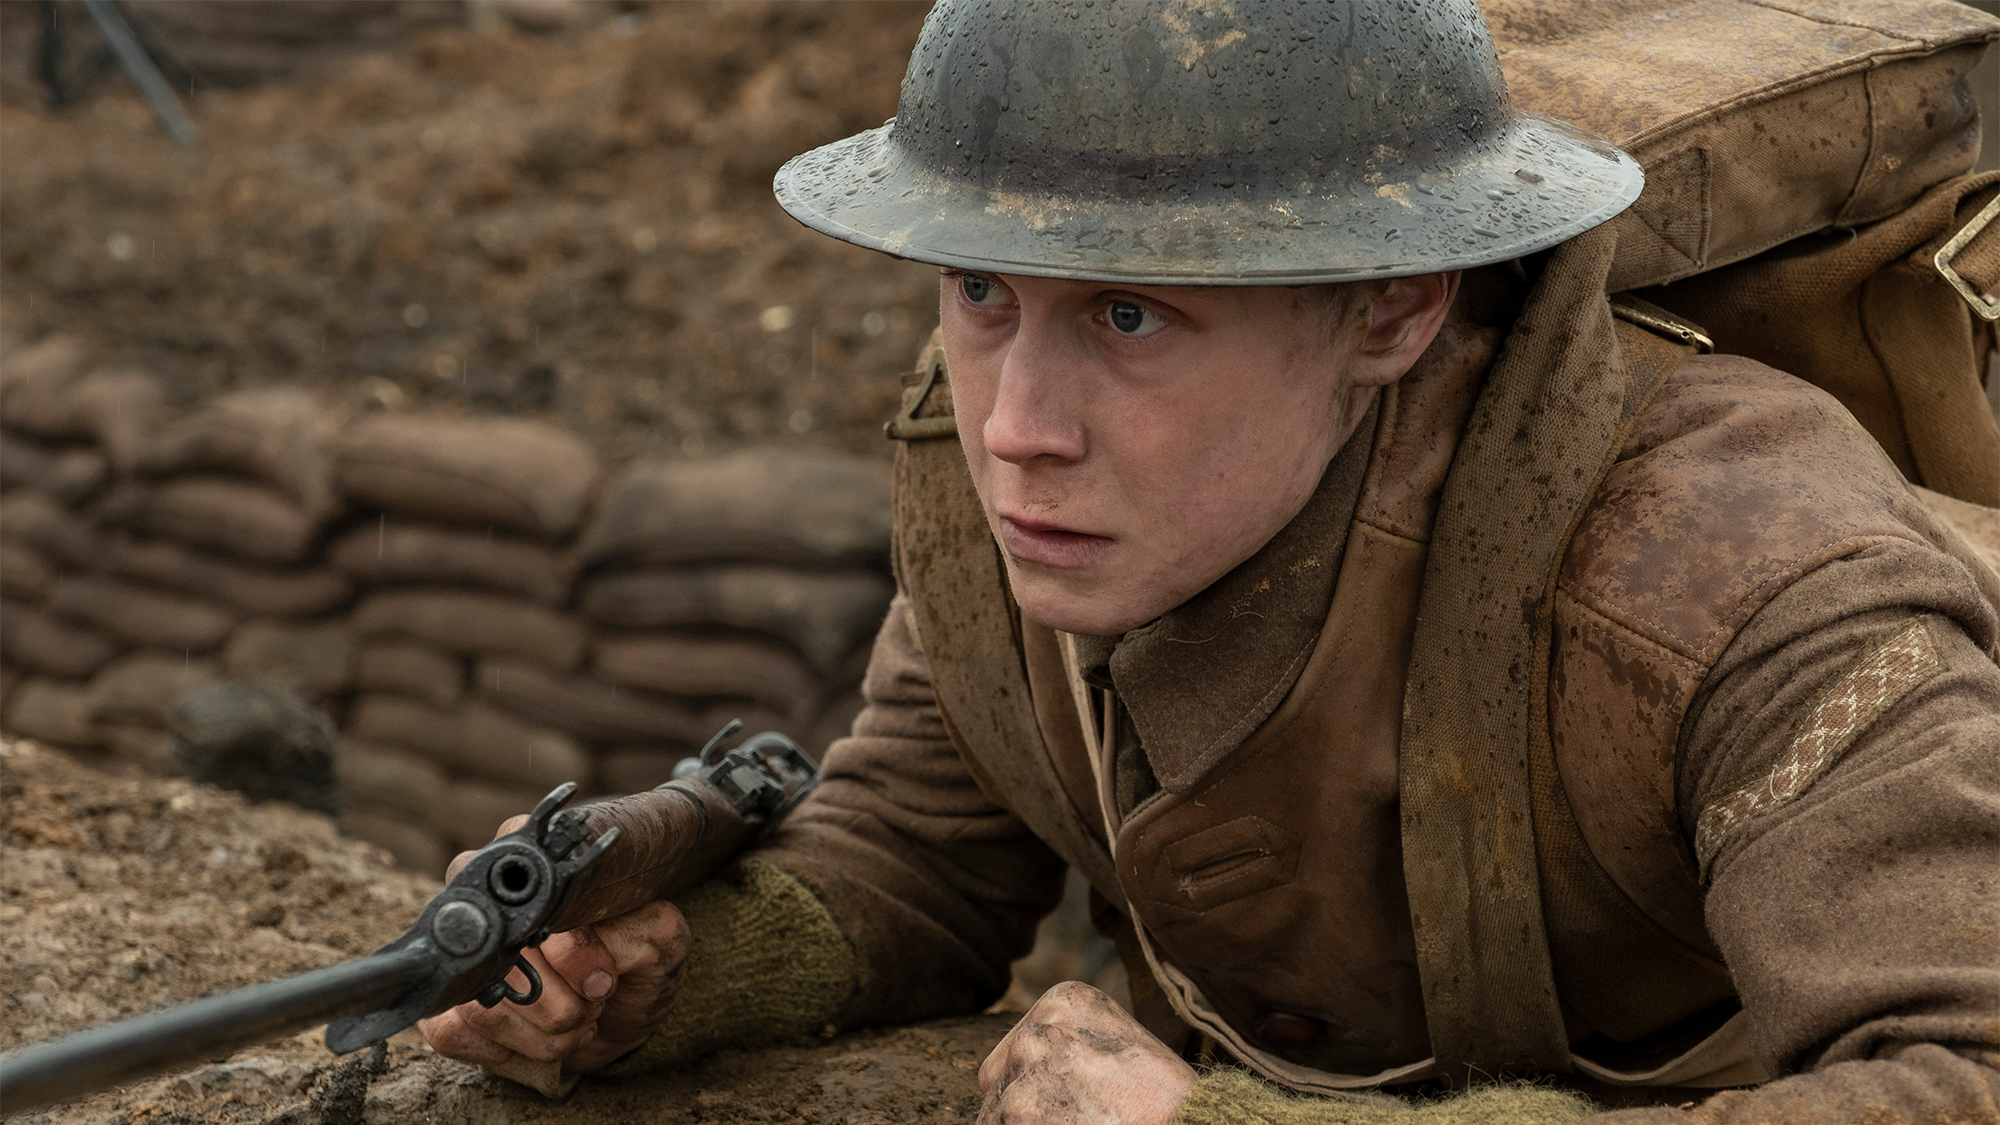 Box Office: '1917' Defeats 'Star Wars' With $36.5 Million Weekend